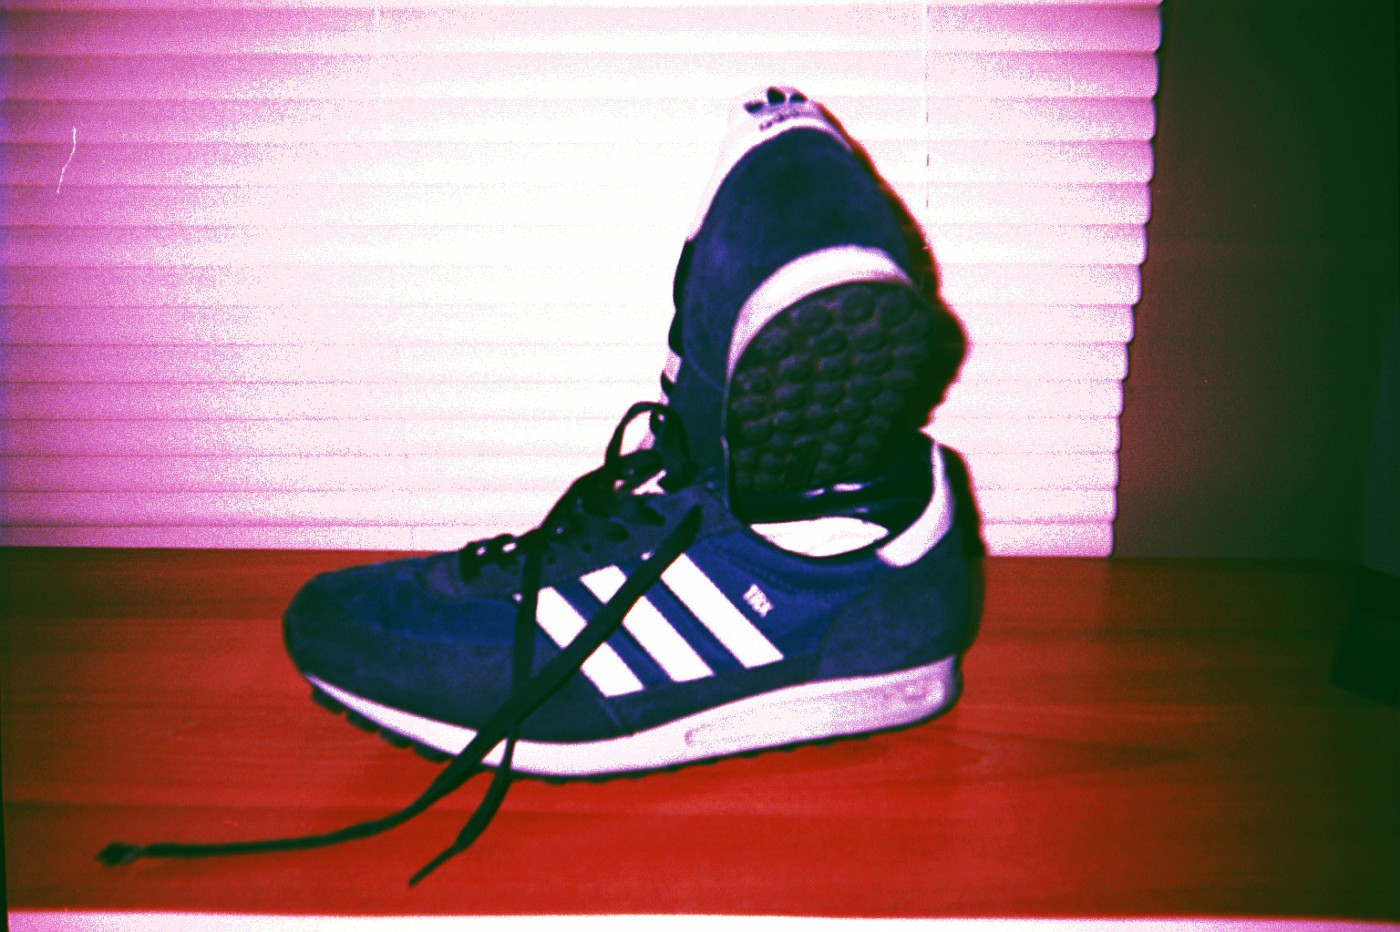 Legendary adidas TRX (1997 re-issue)